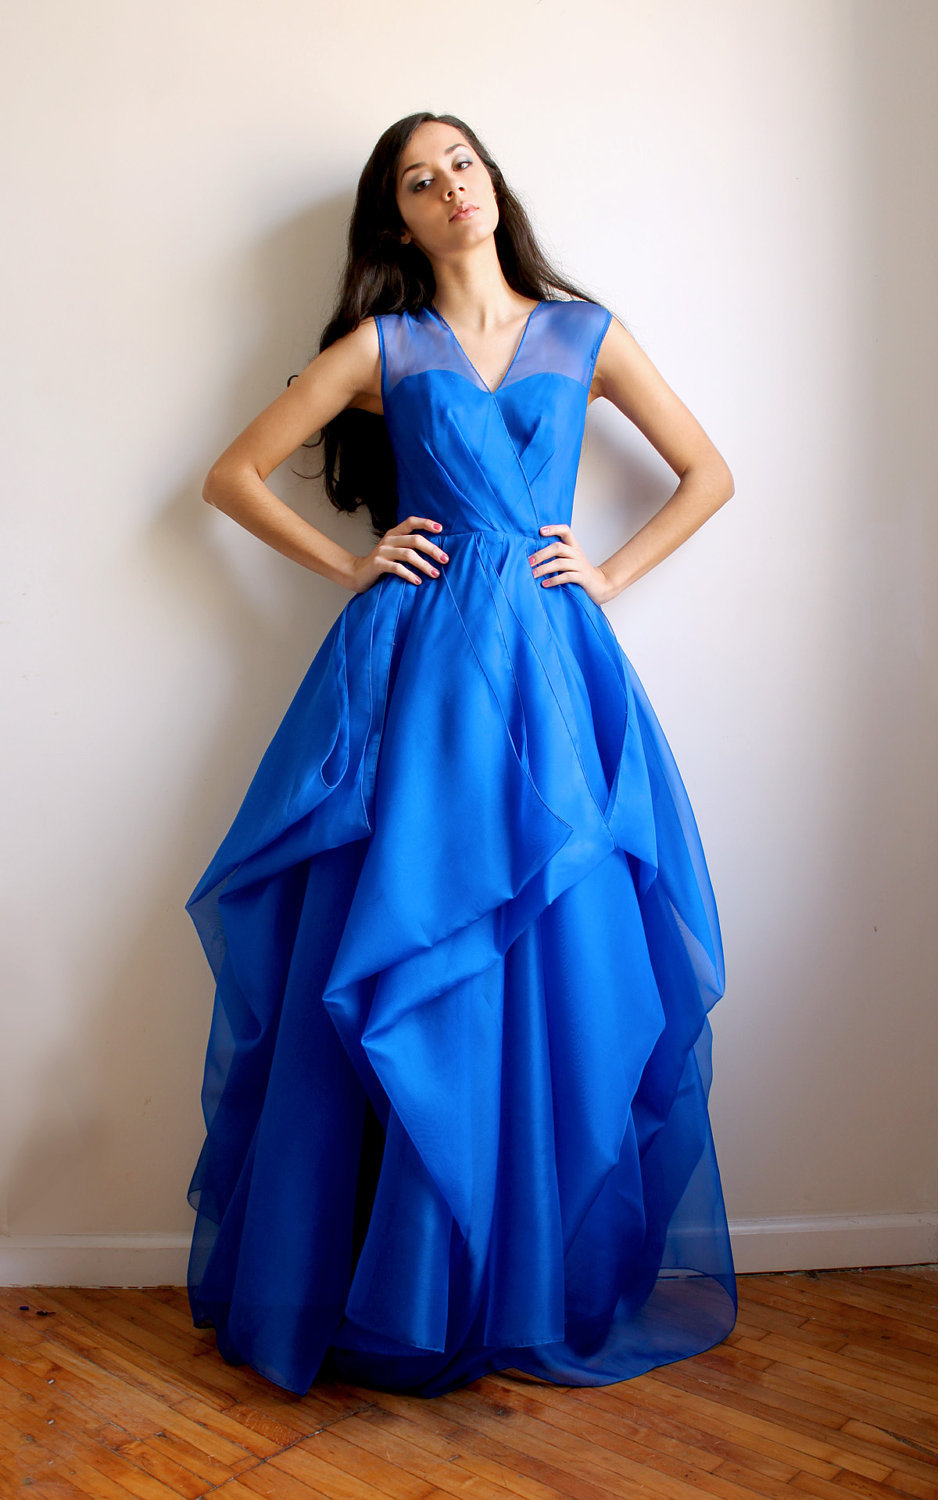 Royal Blue Bridesmaid Dress With Illusion Neckline,Corset For Wedding Dresses